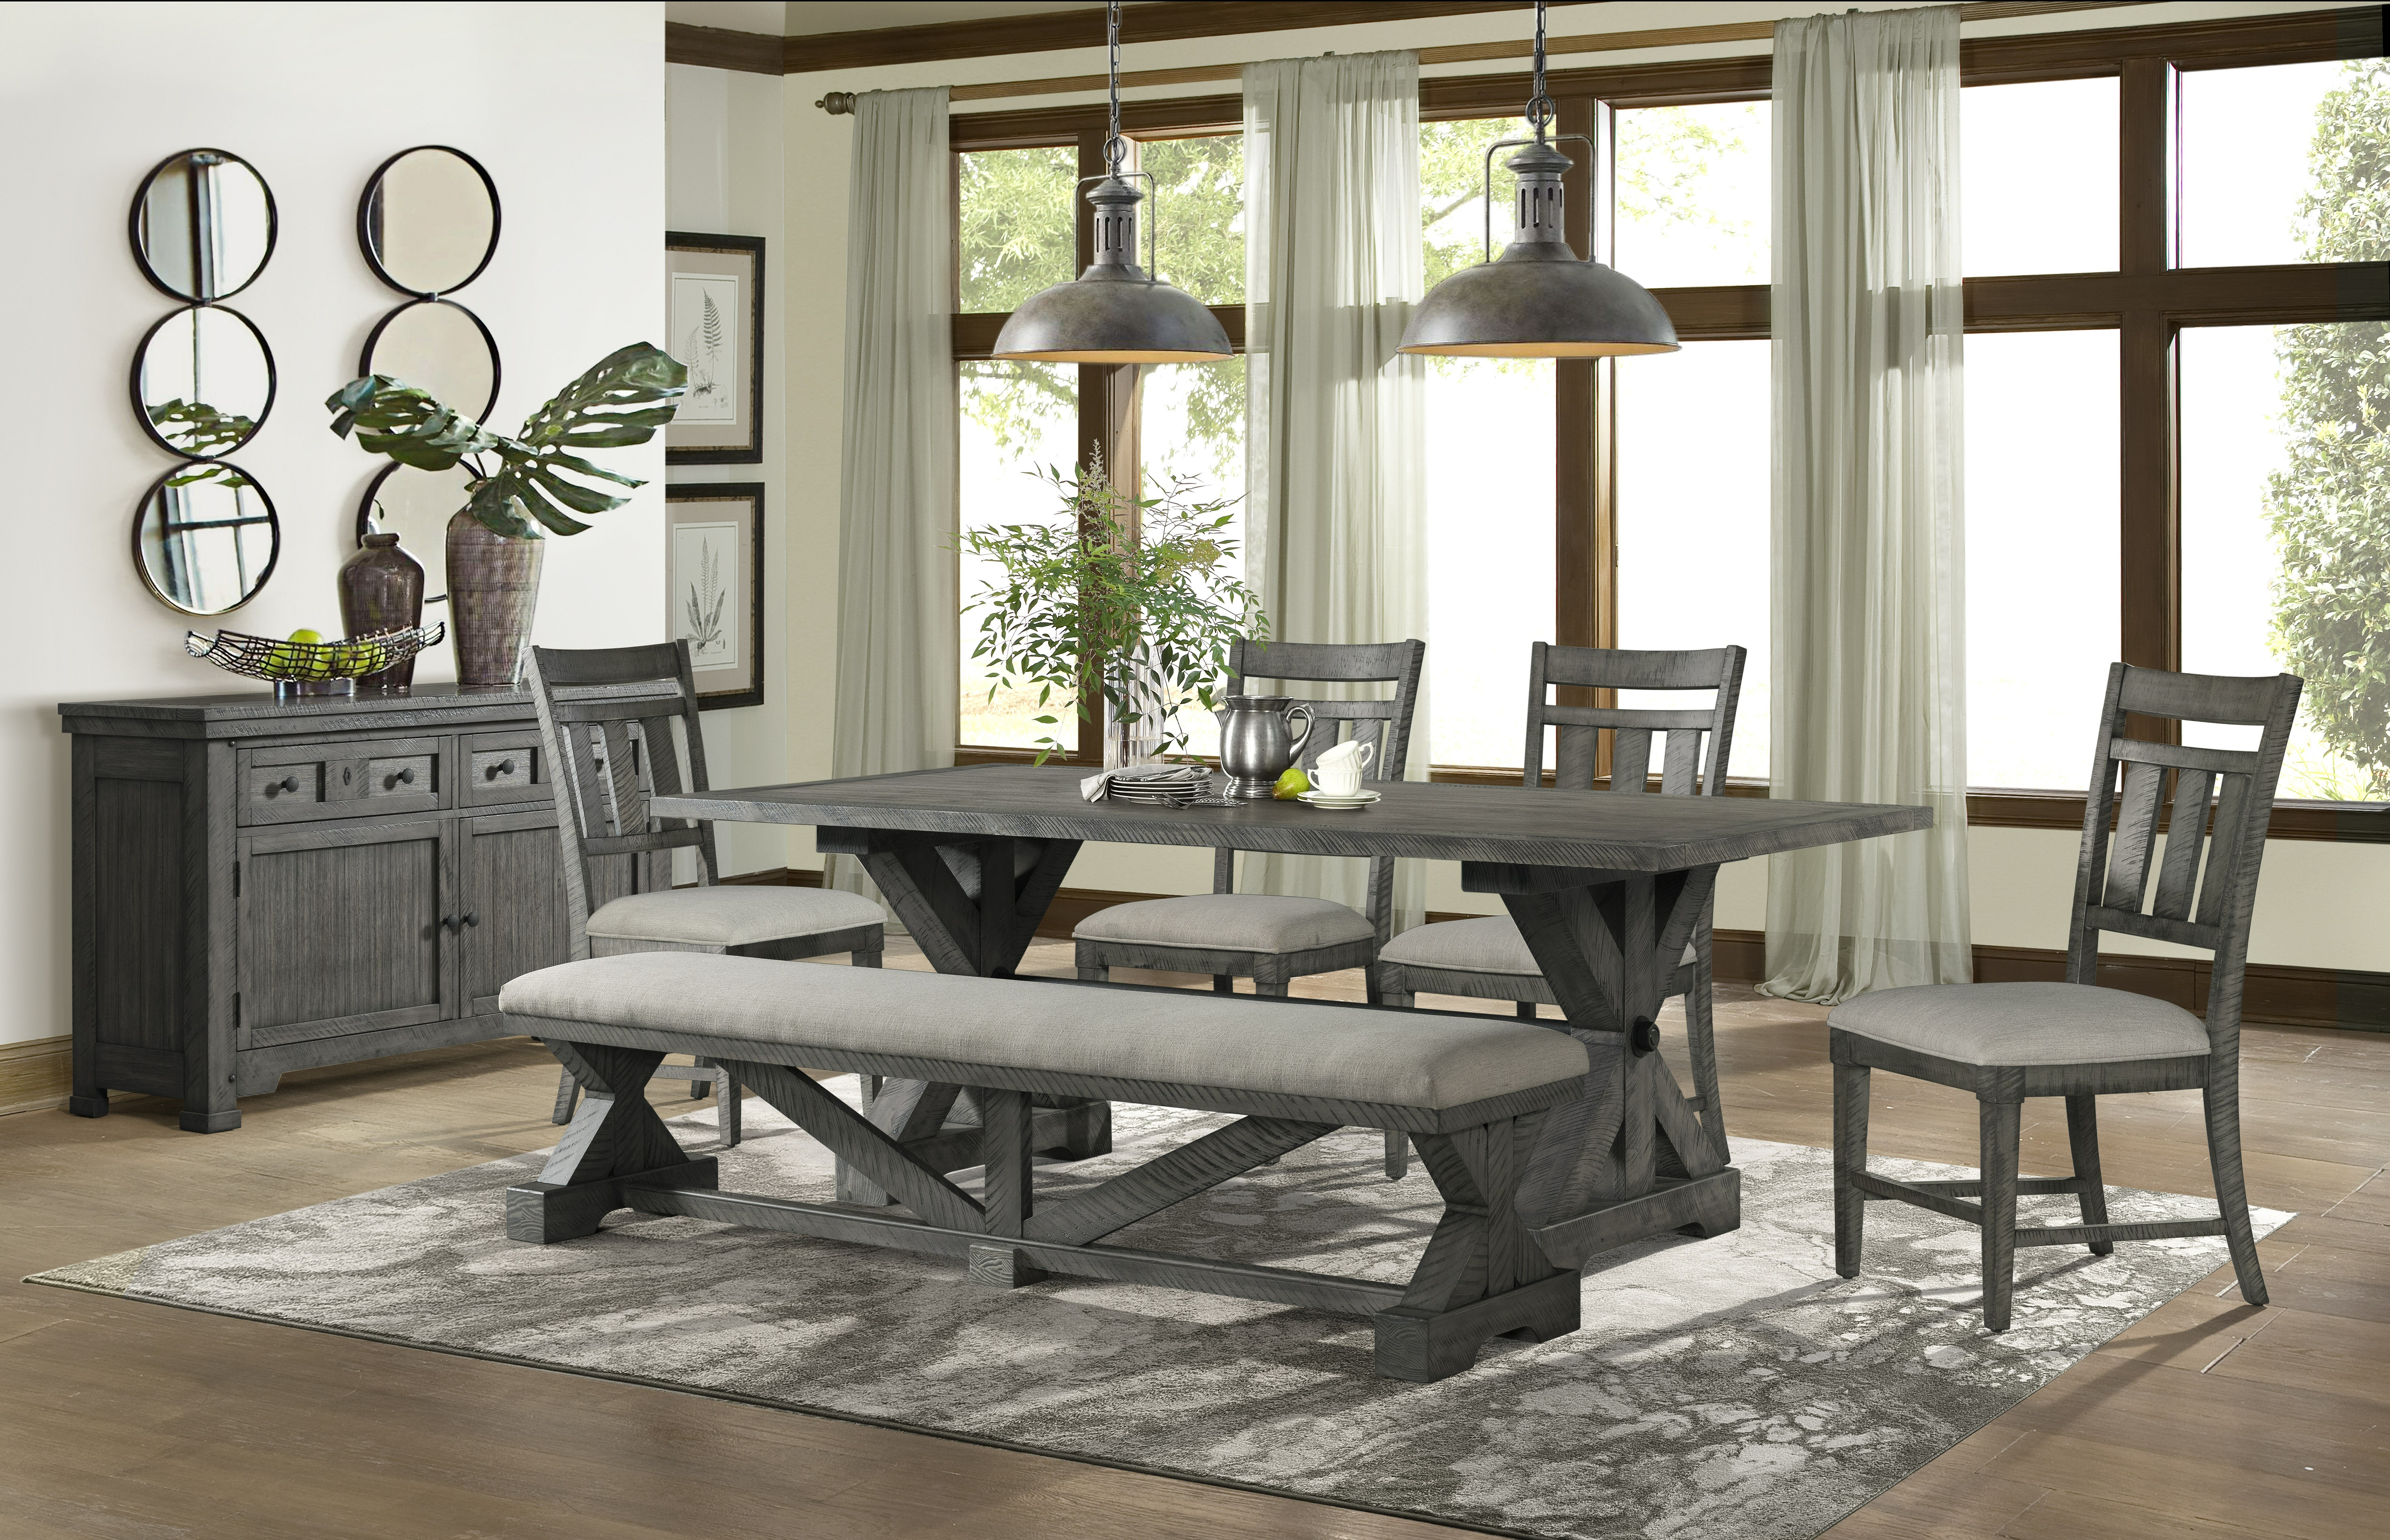 Cool Tandy 6 Piece Solid Wood Breakfast Nook Dining Set Andrewgaddart Wooden Chair Designs For Living Room Andrewgaddartcom